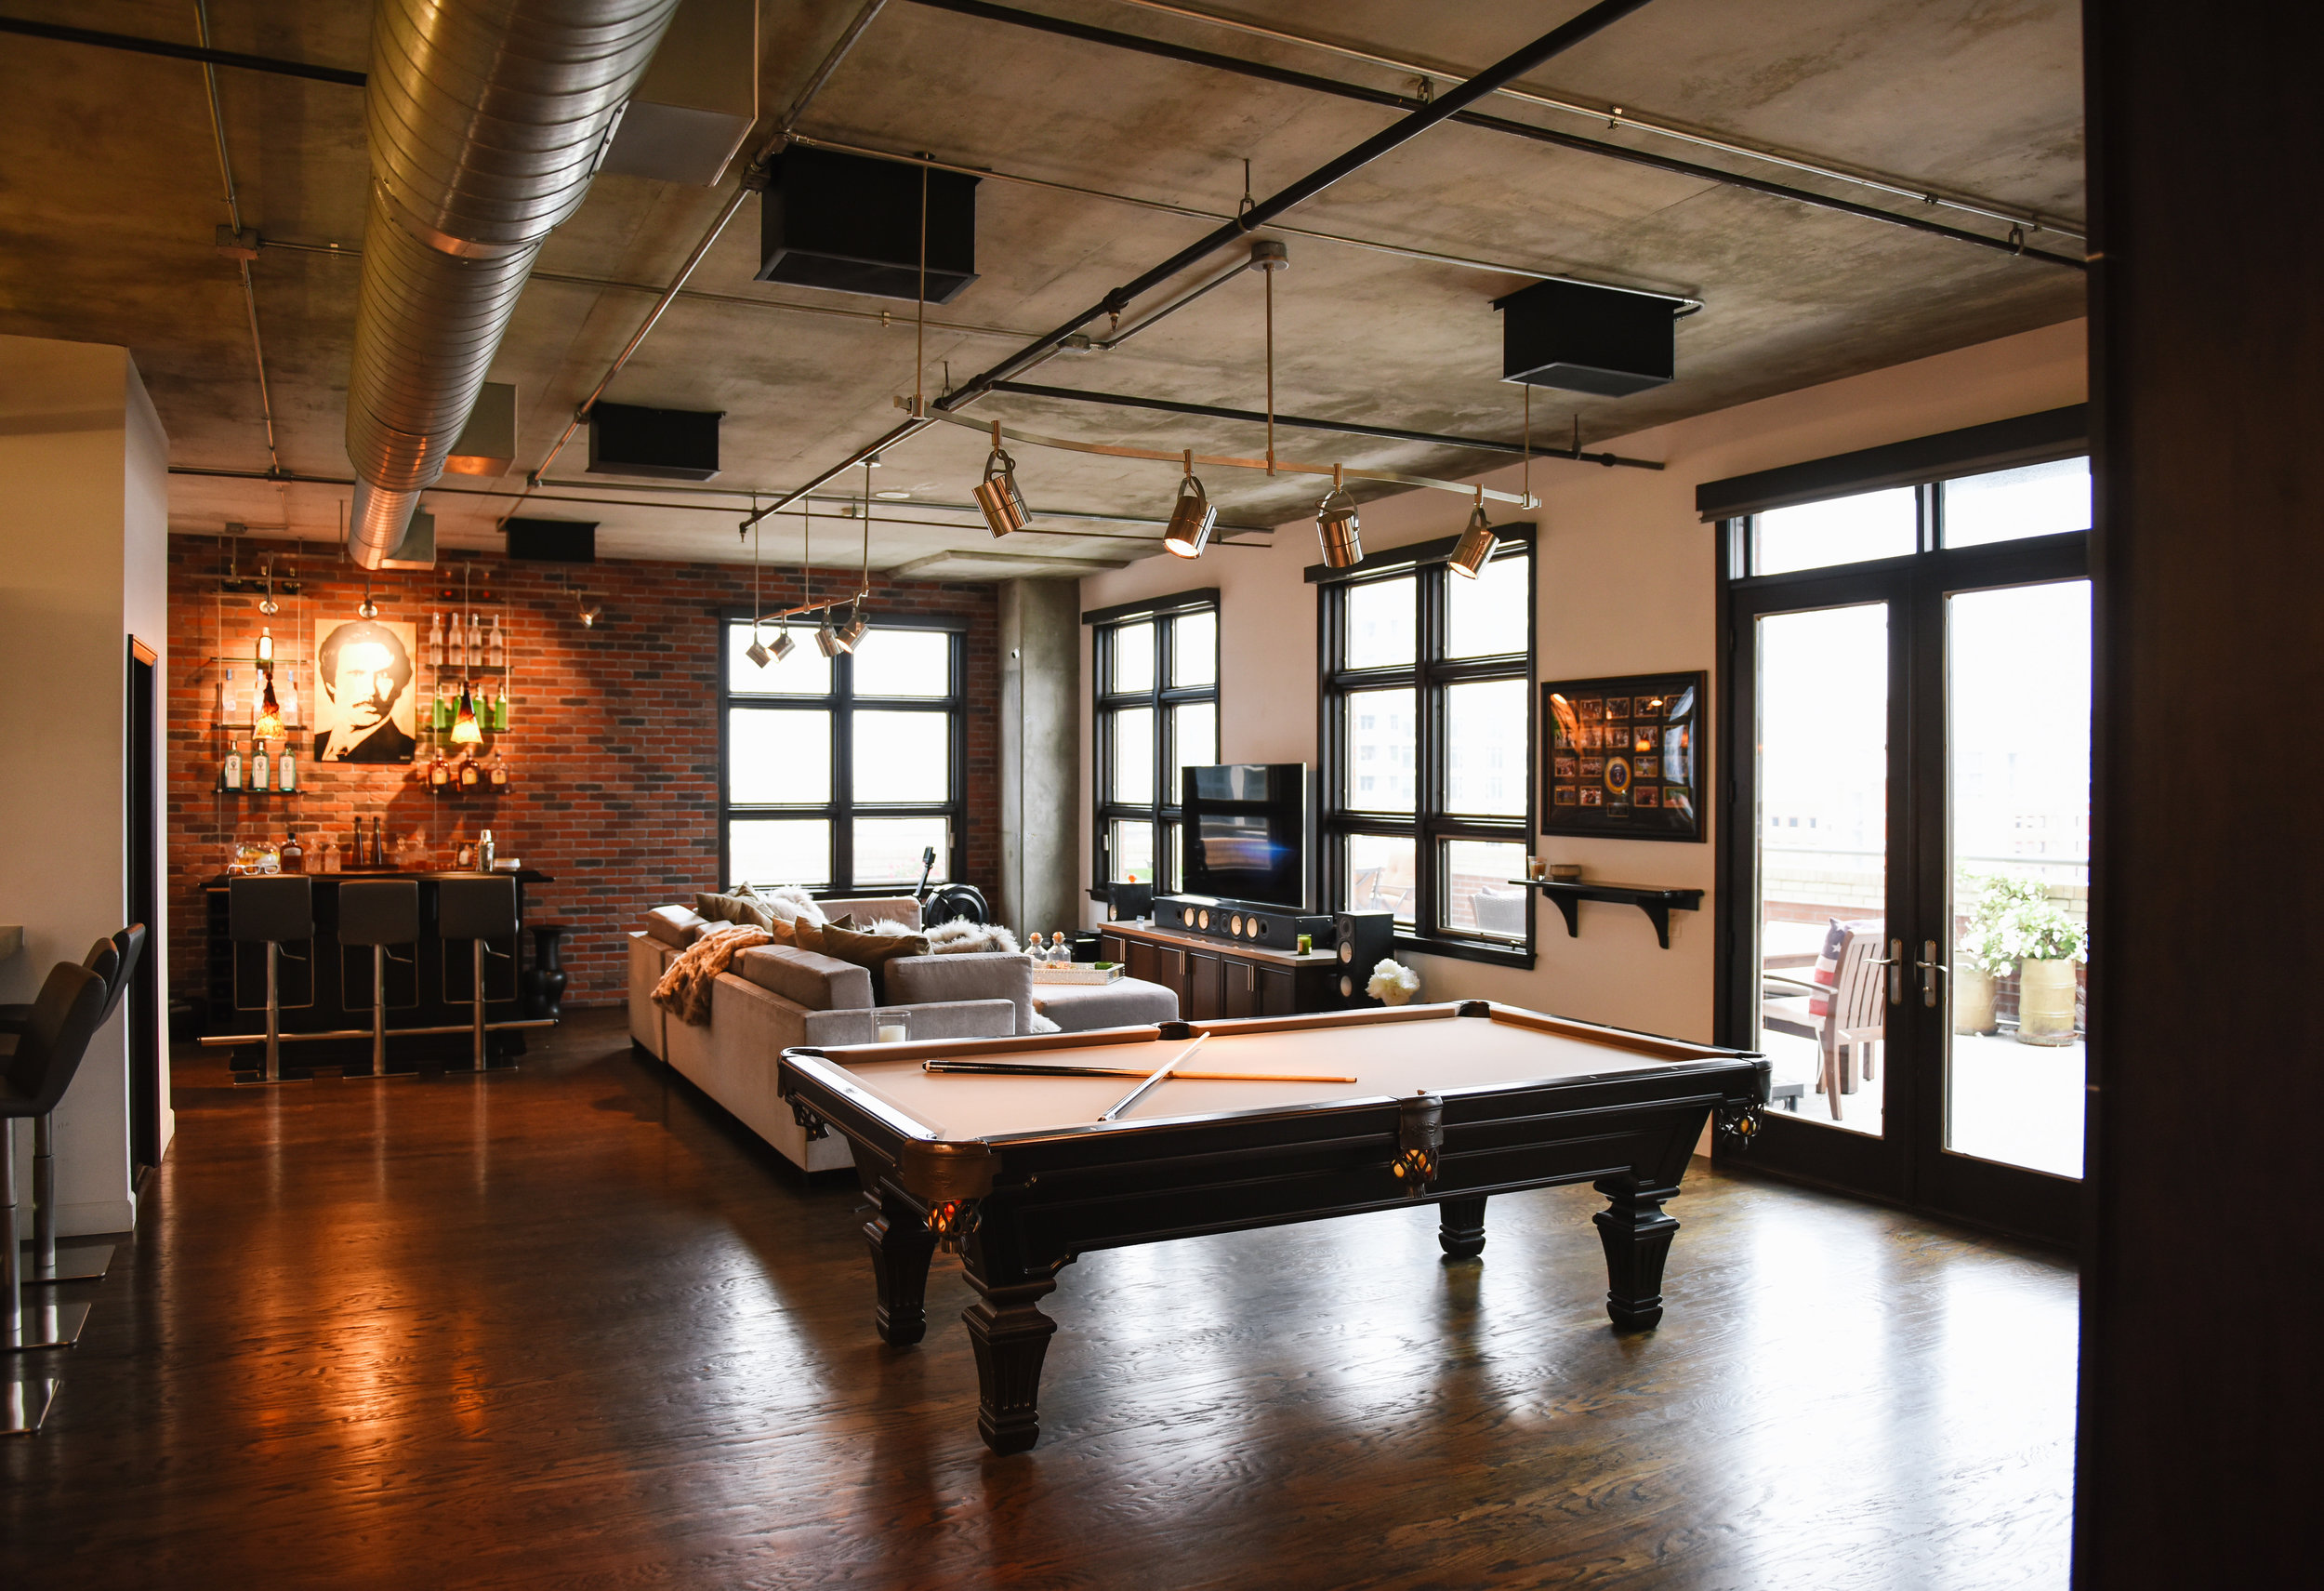 SOPHISTICATED LOFT VIEW